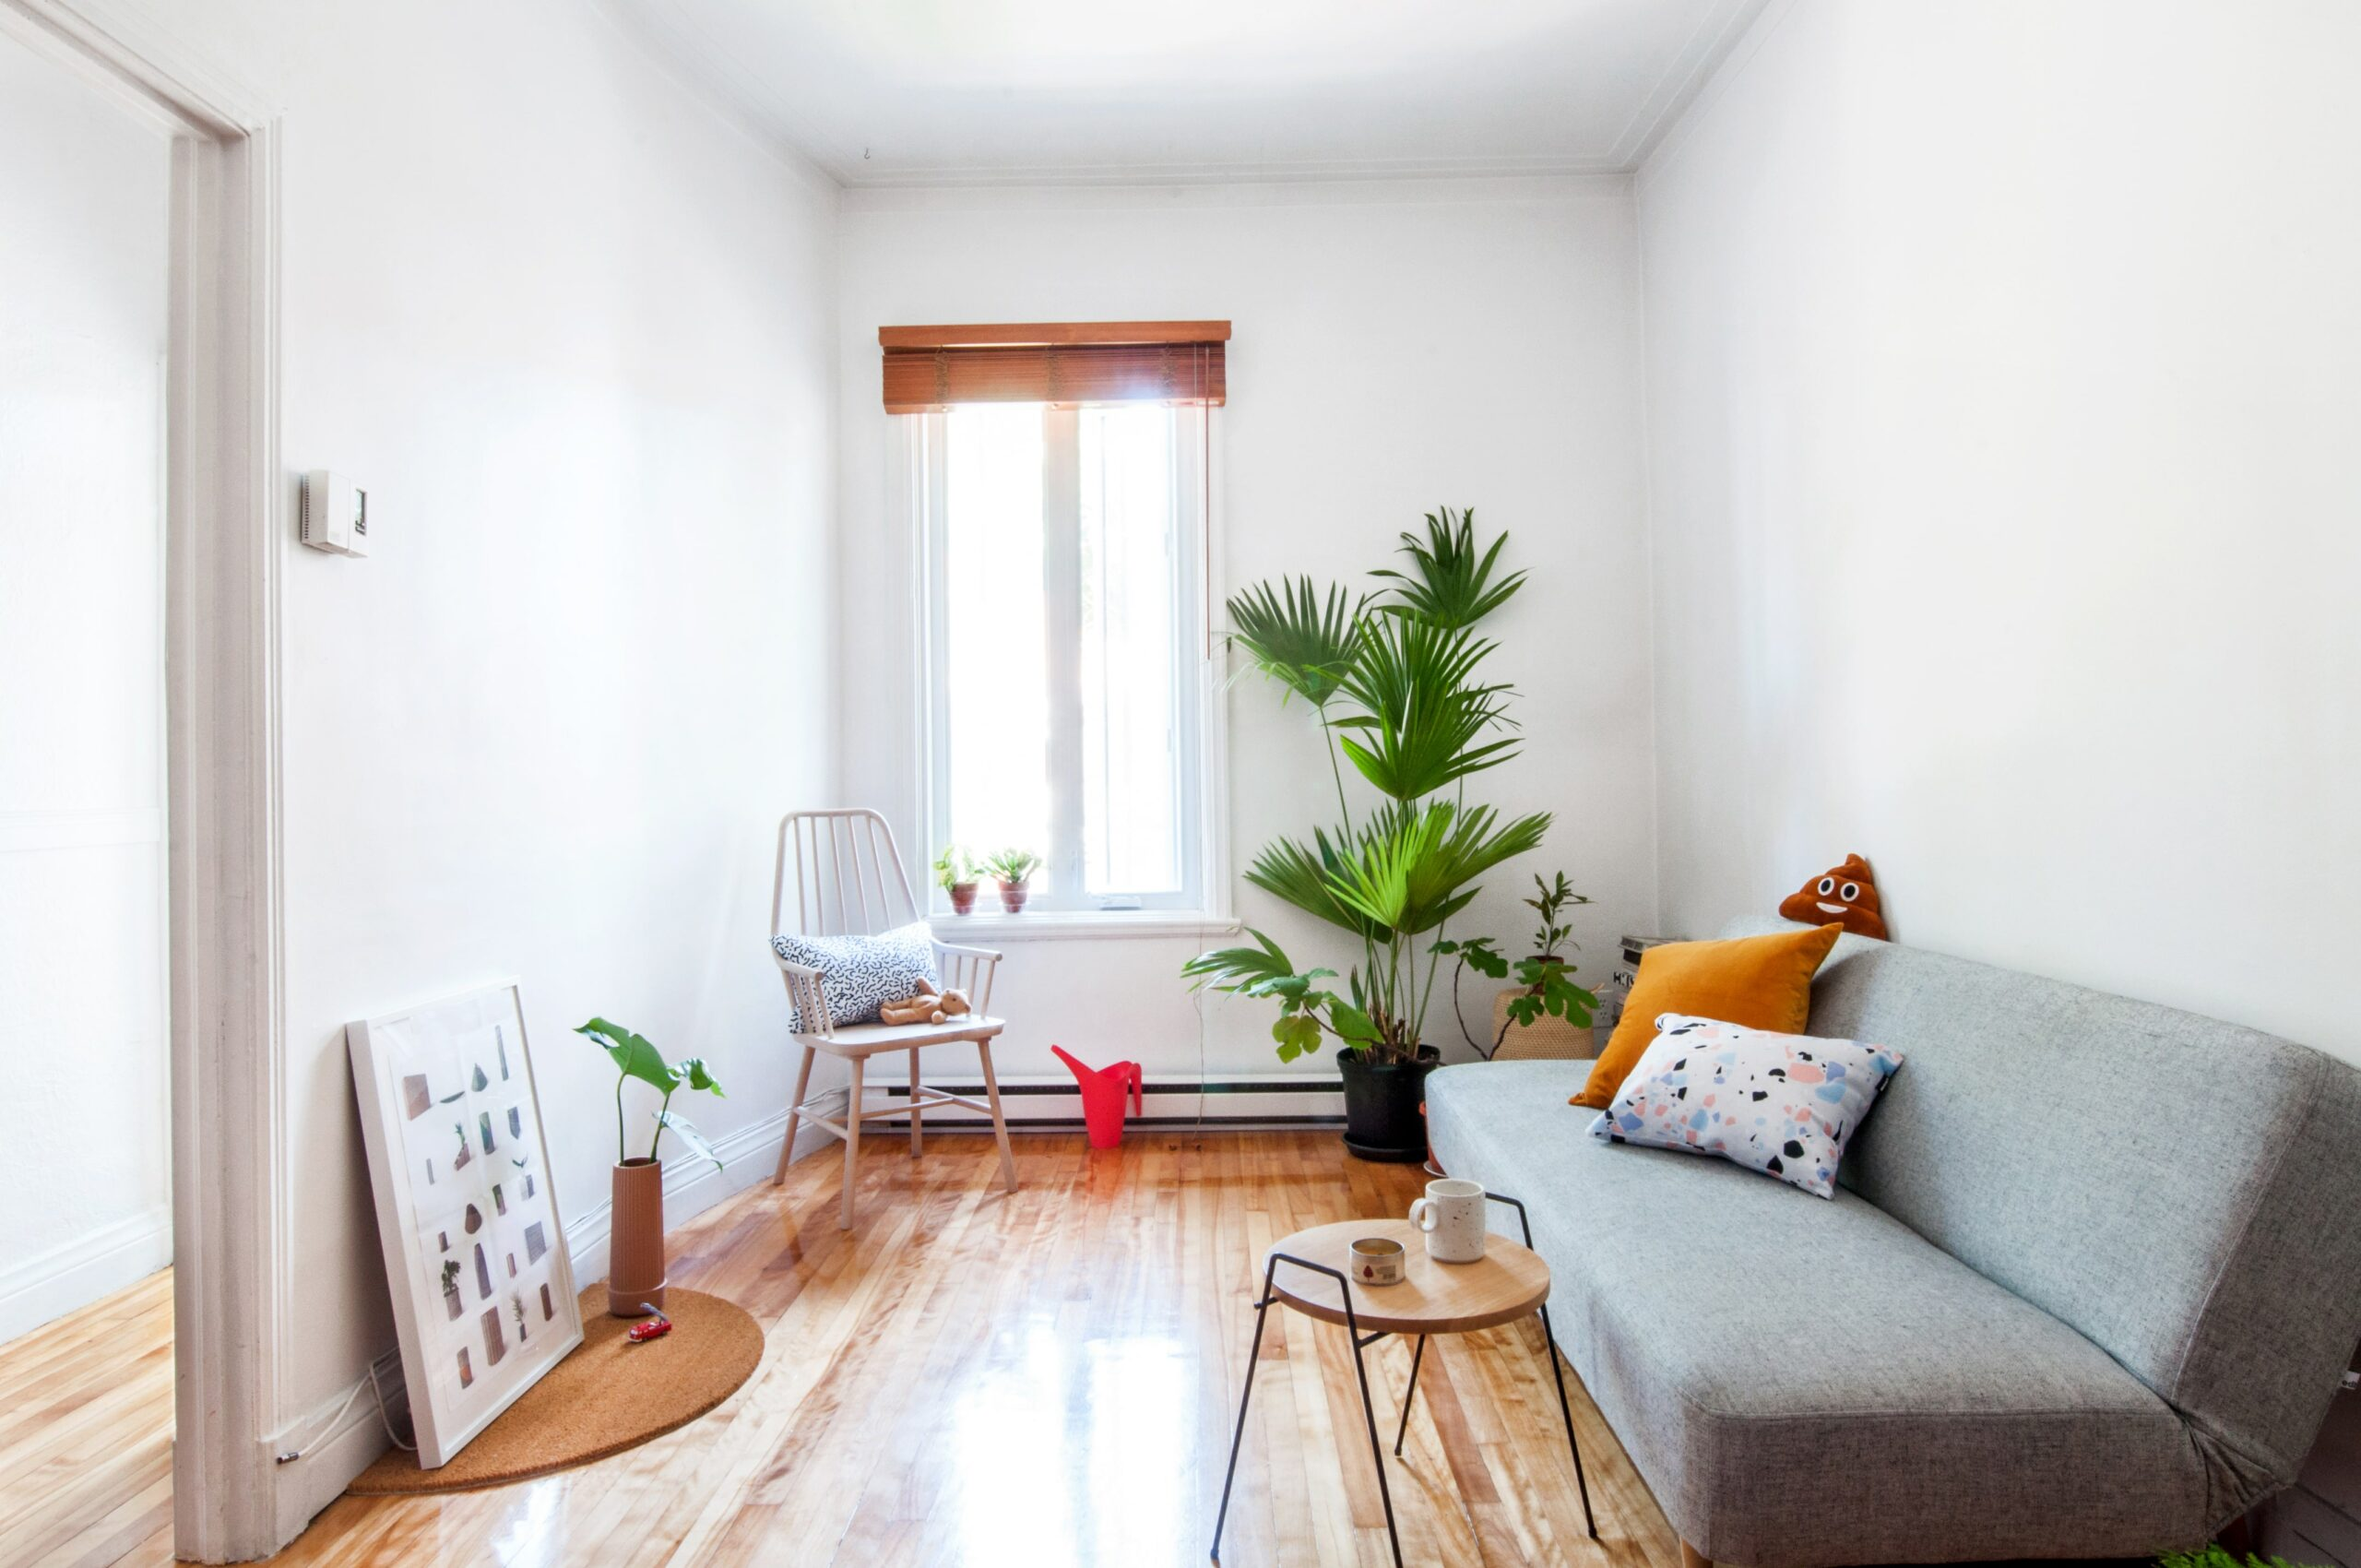 Tips for decorating a minimal home